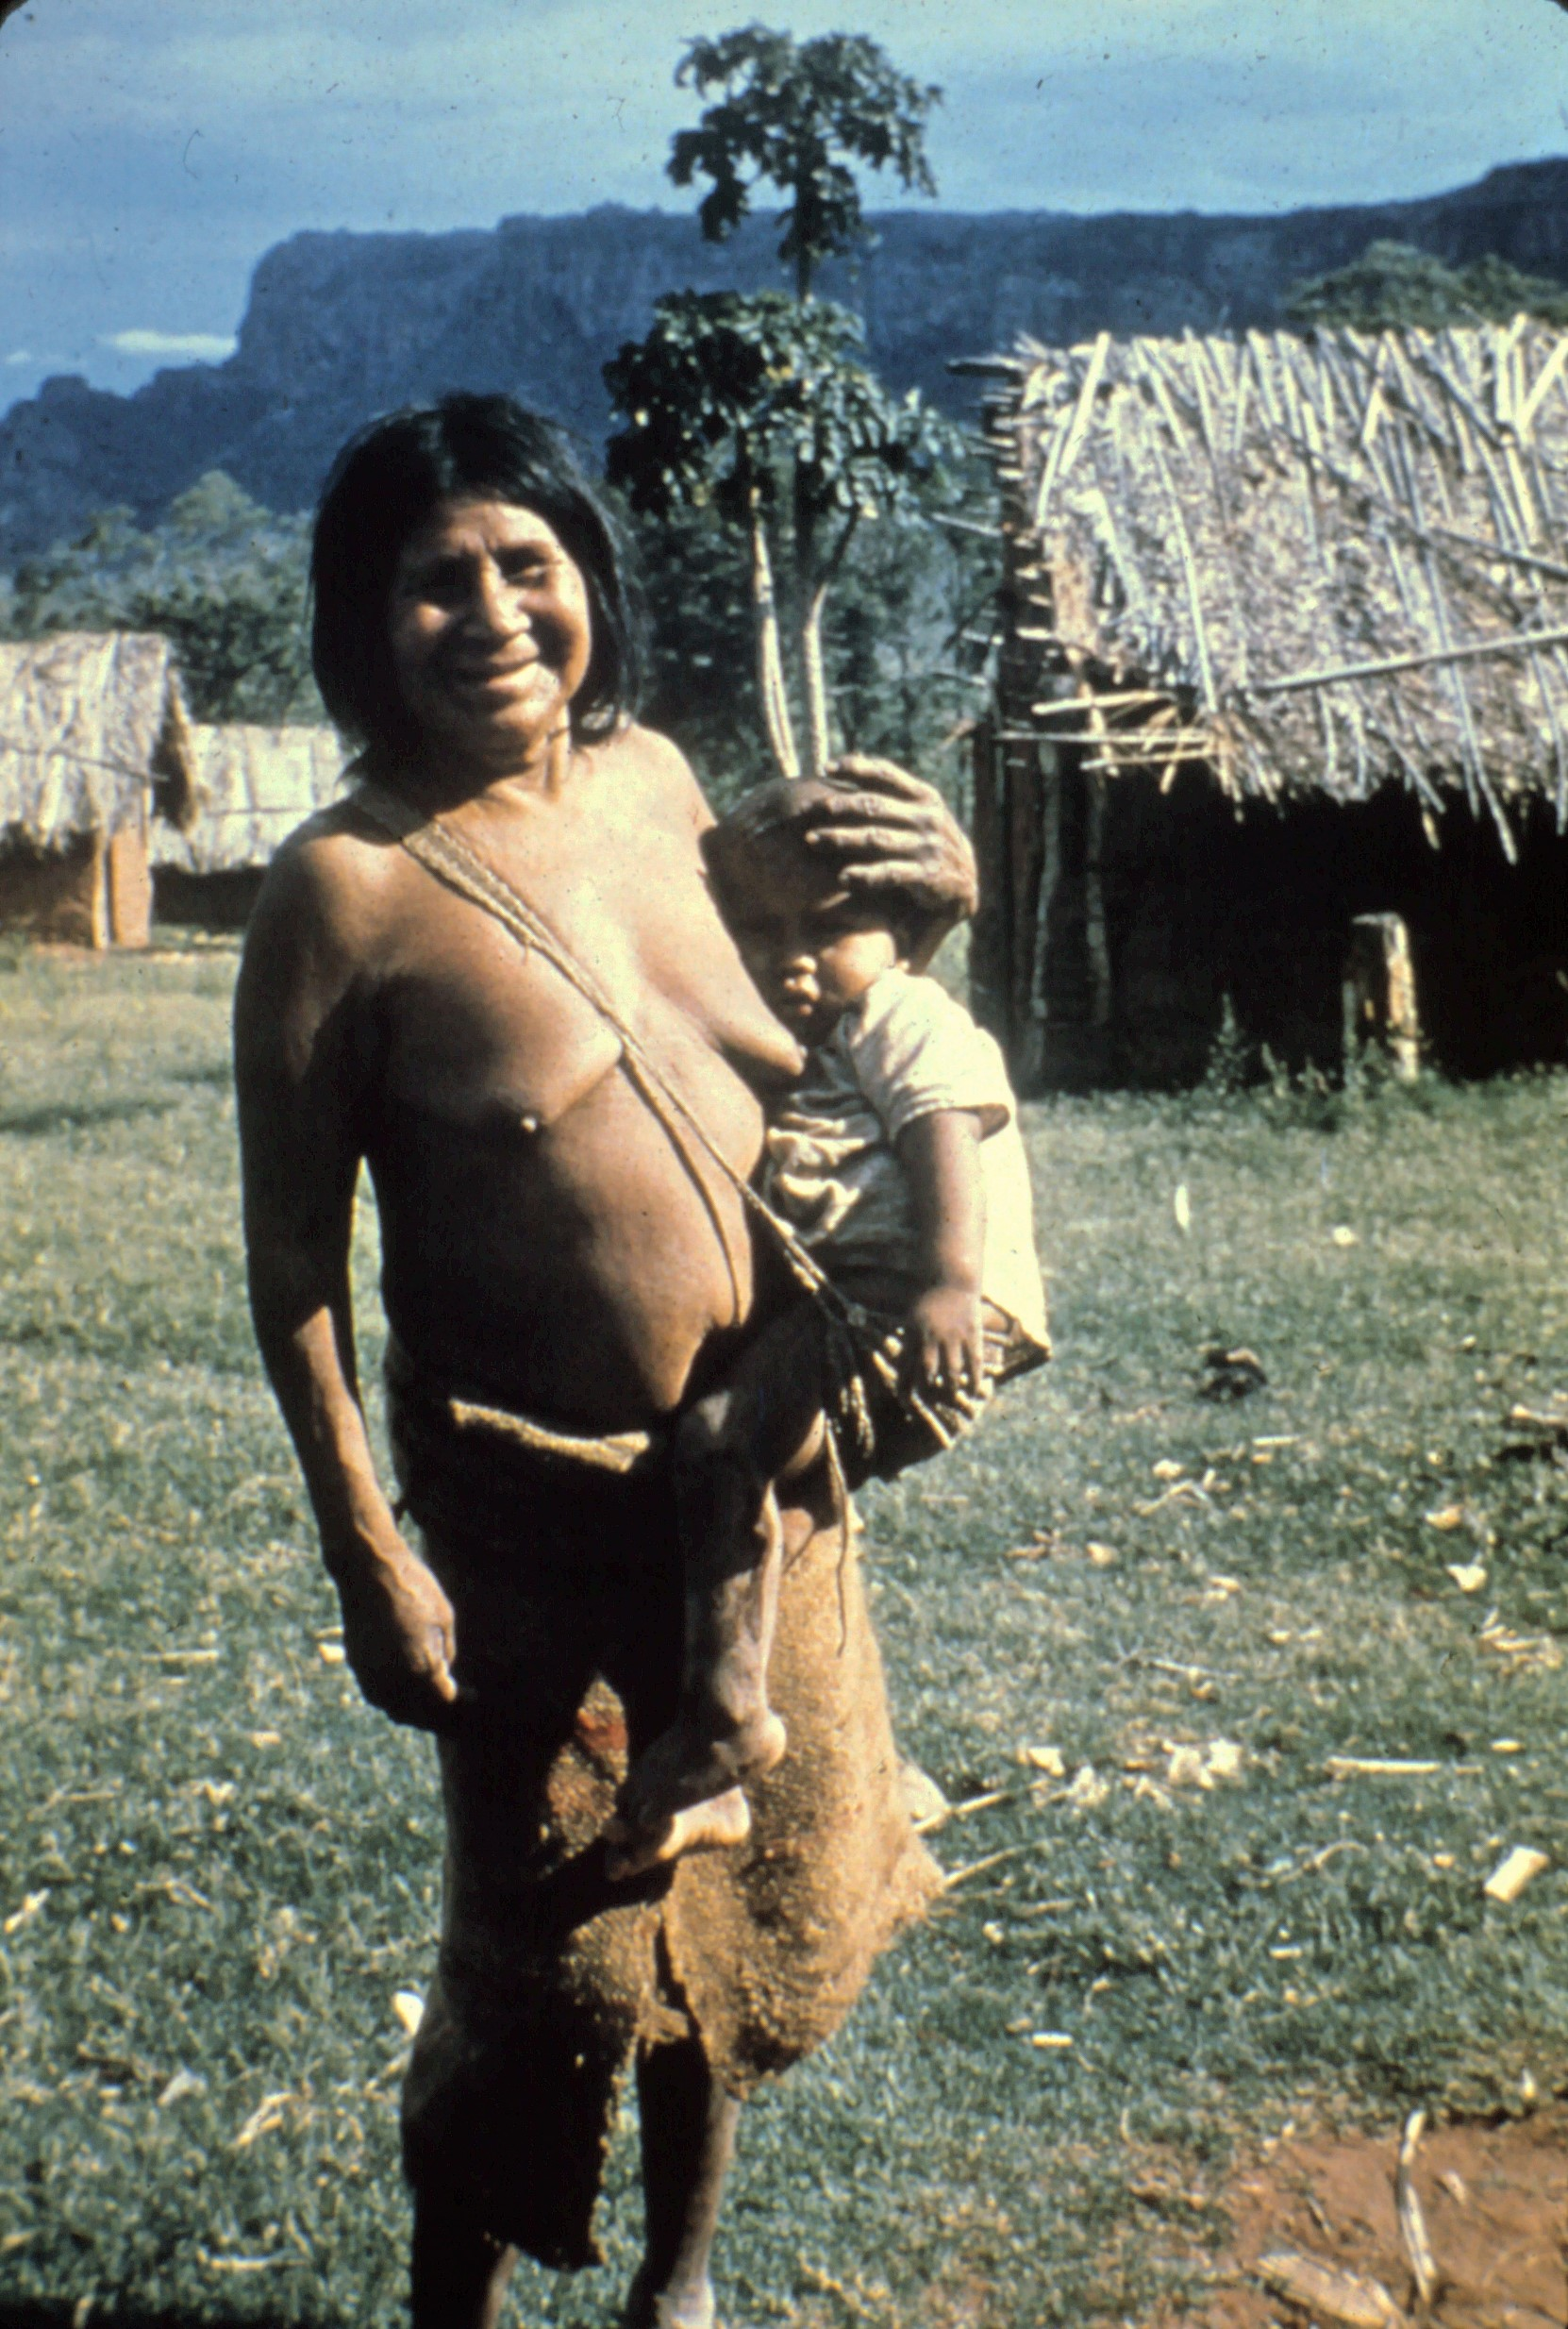 Ayoré woman baby sitting, carrying the infant in it's woven baby sling.